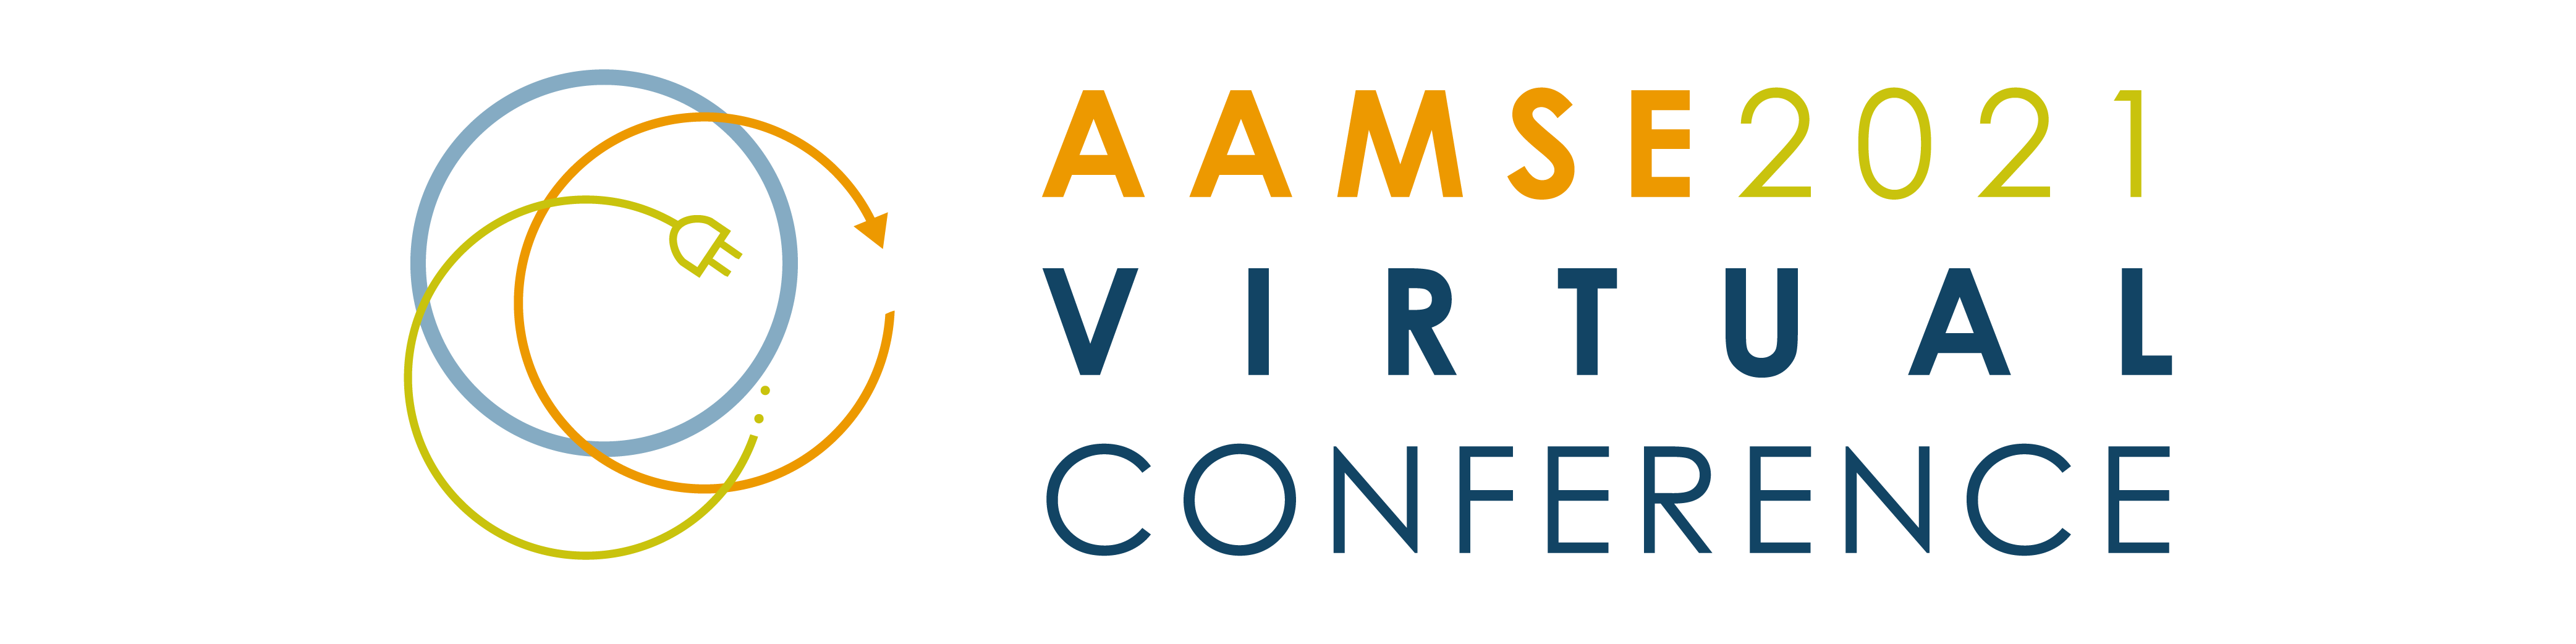 AAMSE 2021 Virtual Conference